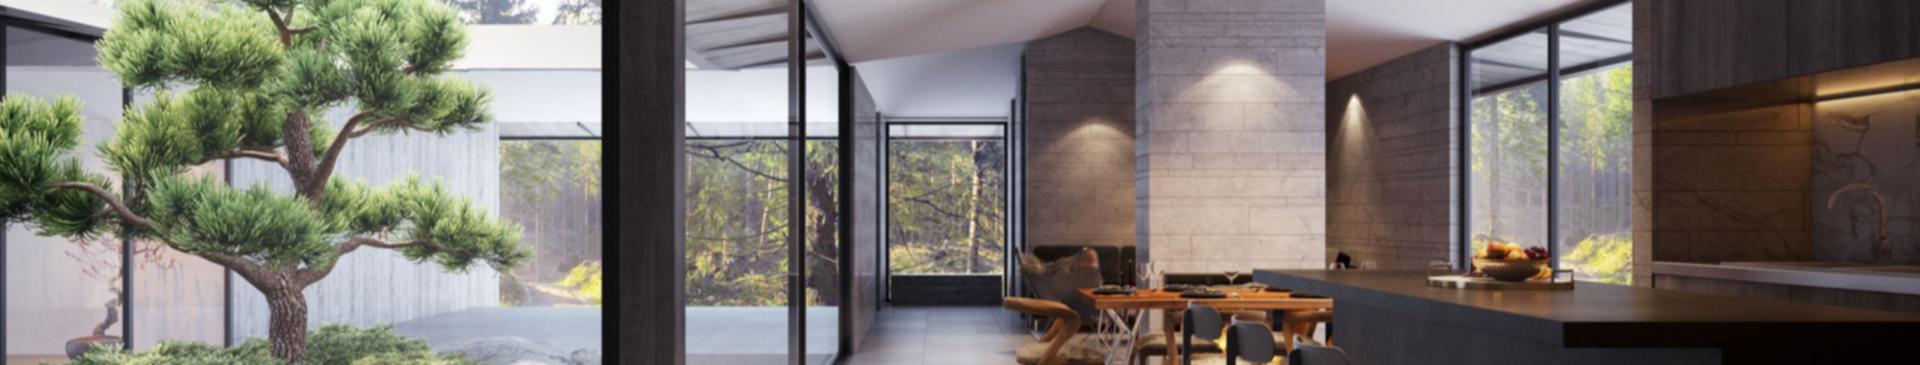 The Ginto Residences Villa Updates Video